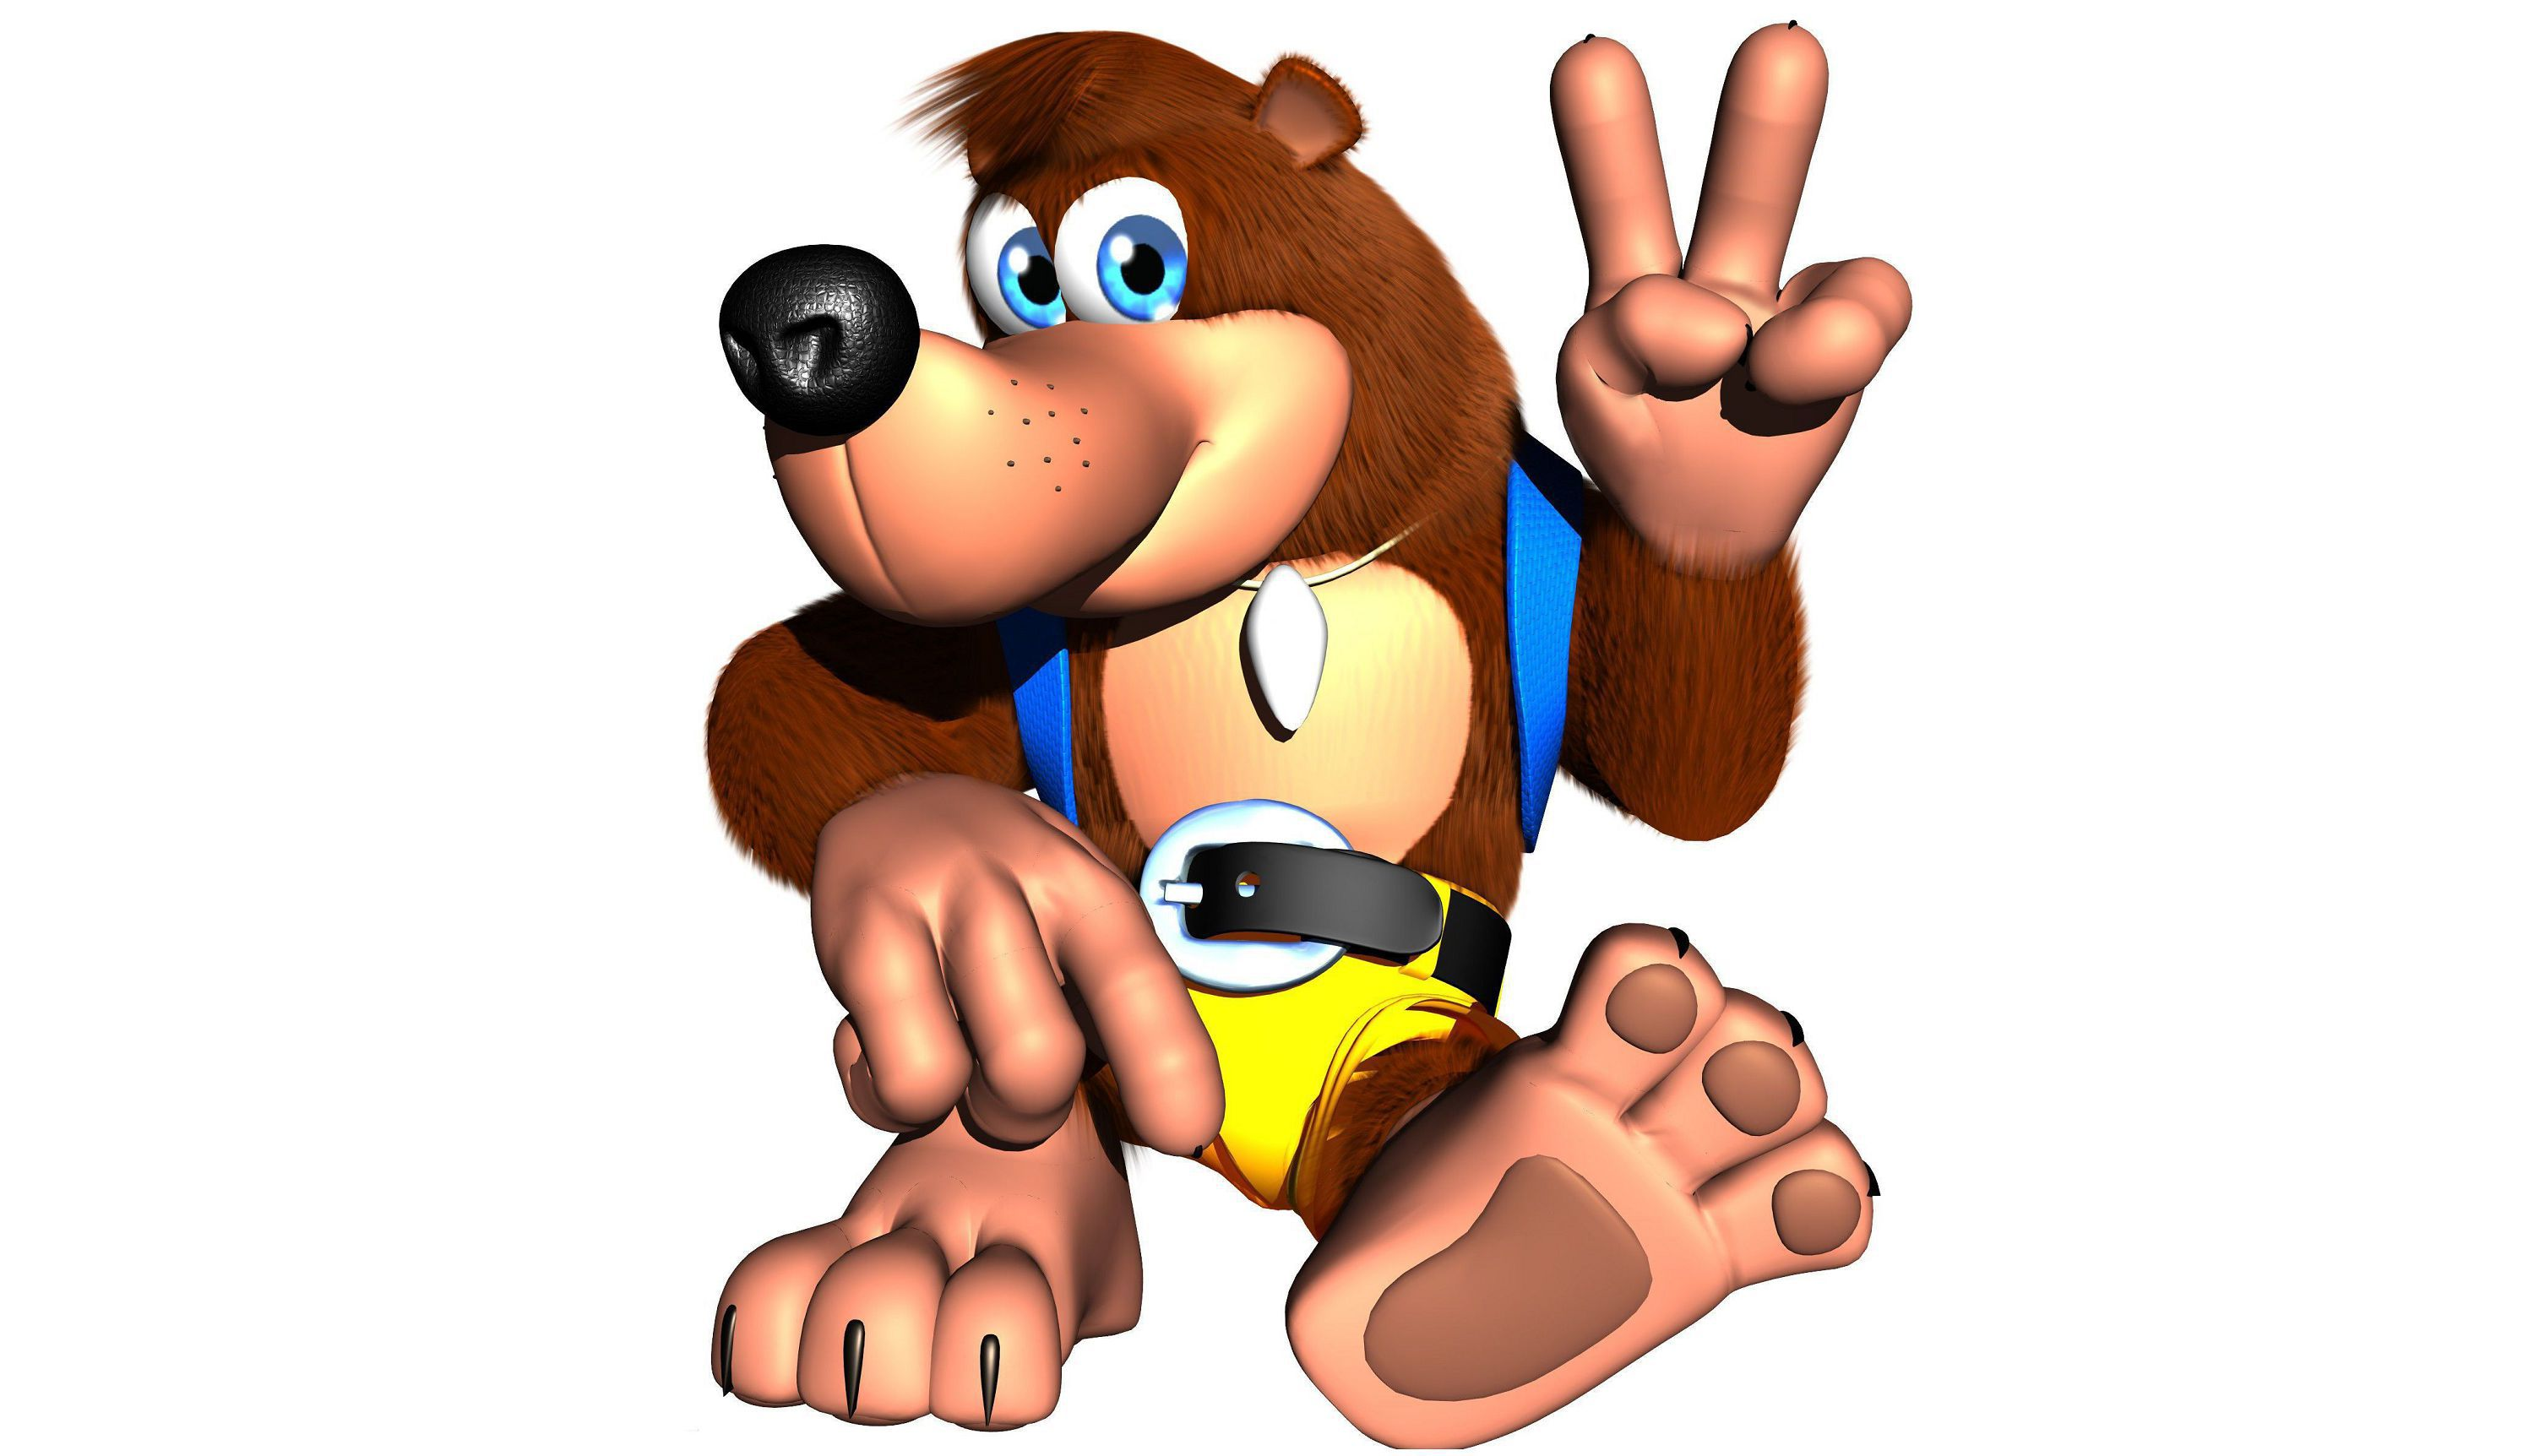 Banjo Kazooie High Quality Wallpapers